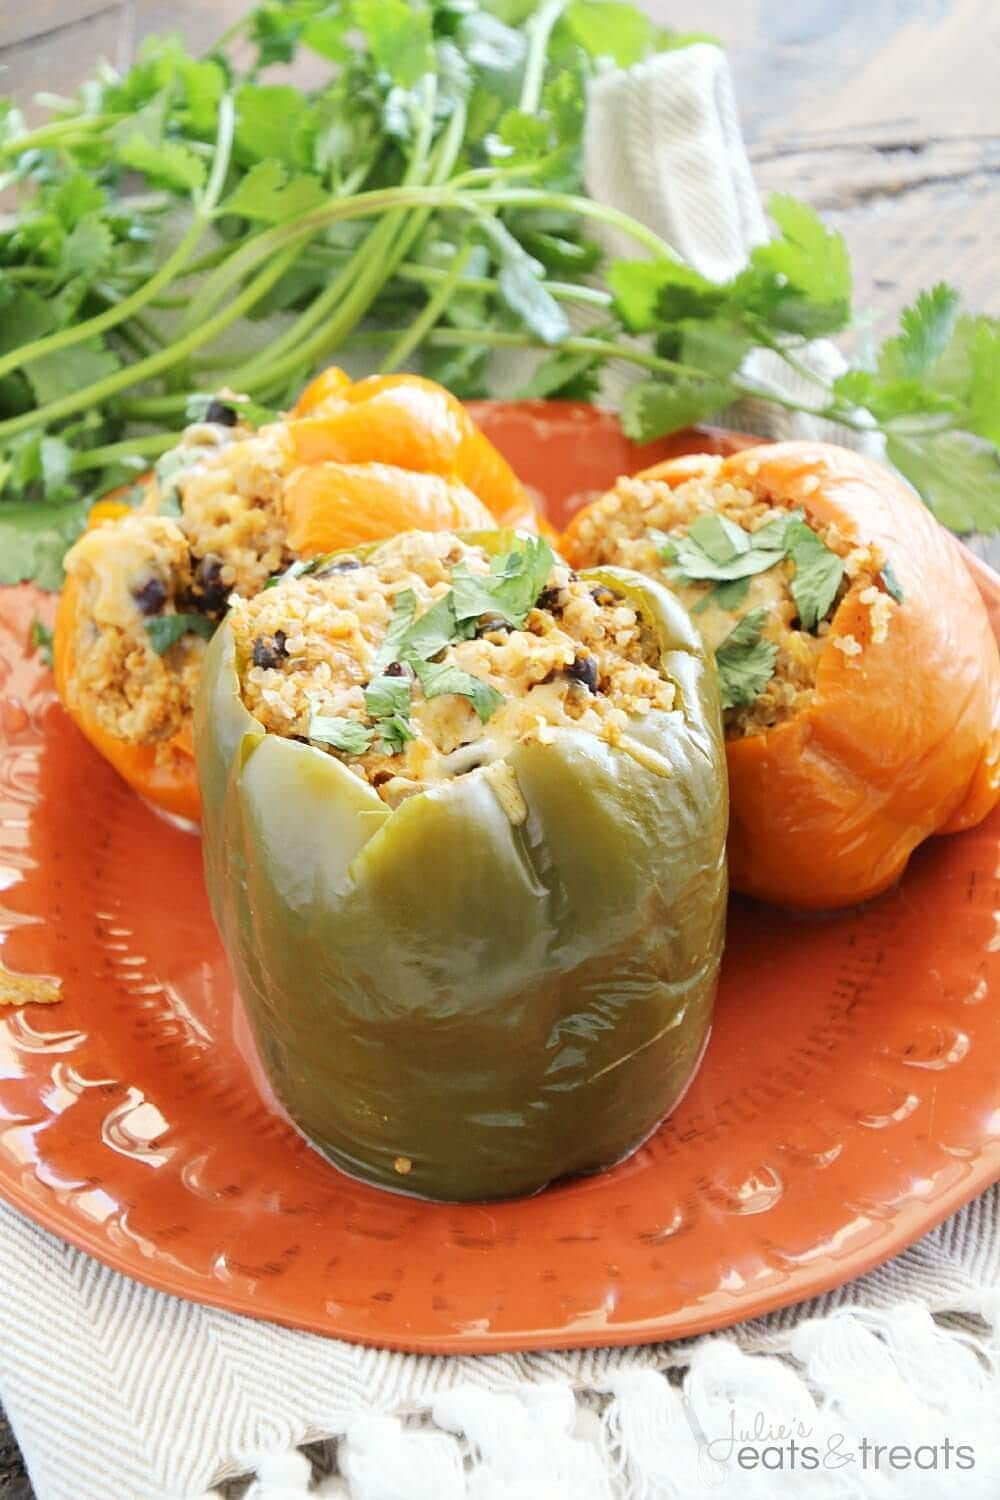 Light Crock Pot Quinoa Chicken Stuffed Peppers ~ Light & Delicious Peppers Stuffed with Quinoa, Black Beans, Onions, Chicken and Cheese then Slow Cooked to Perfection!